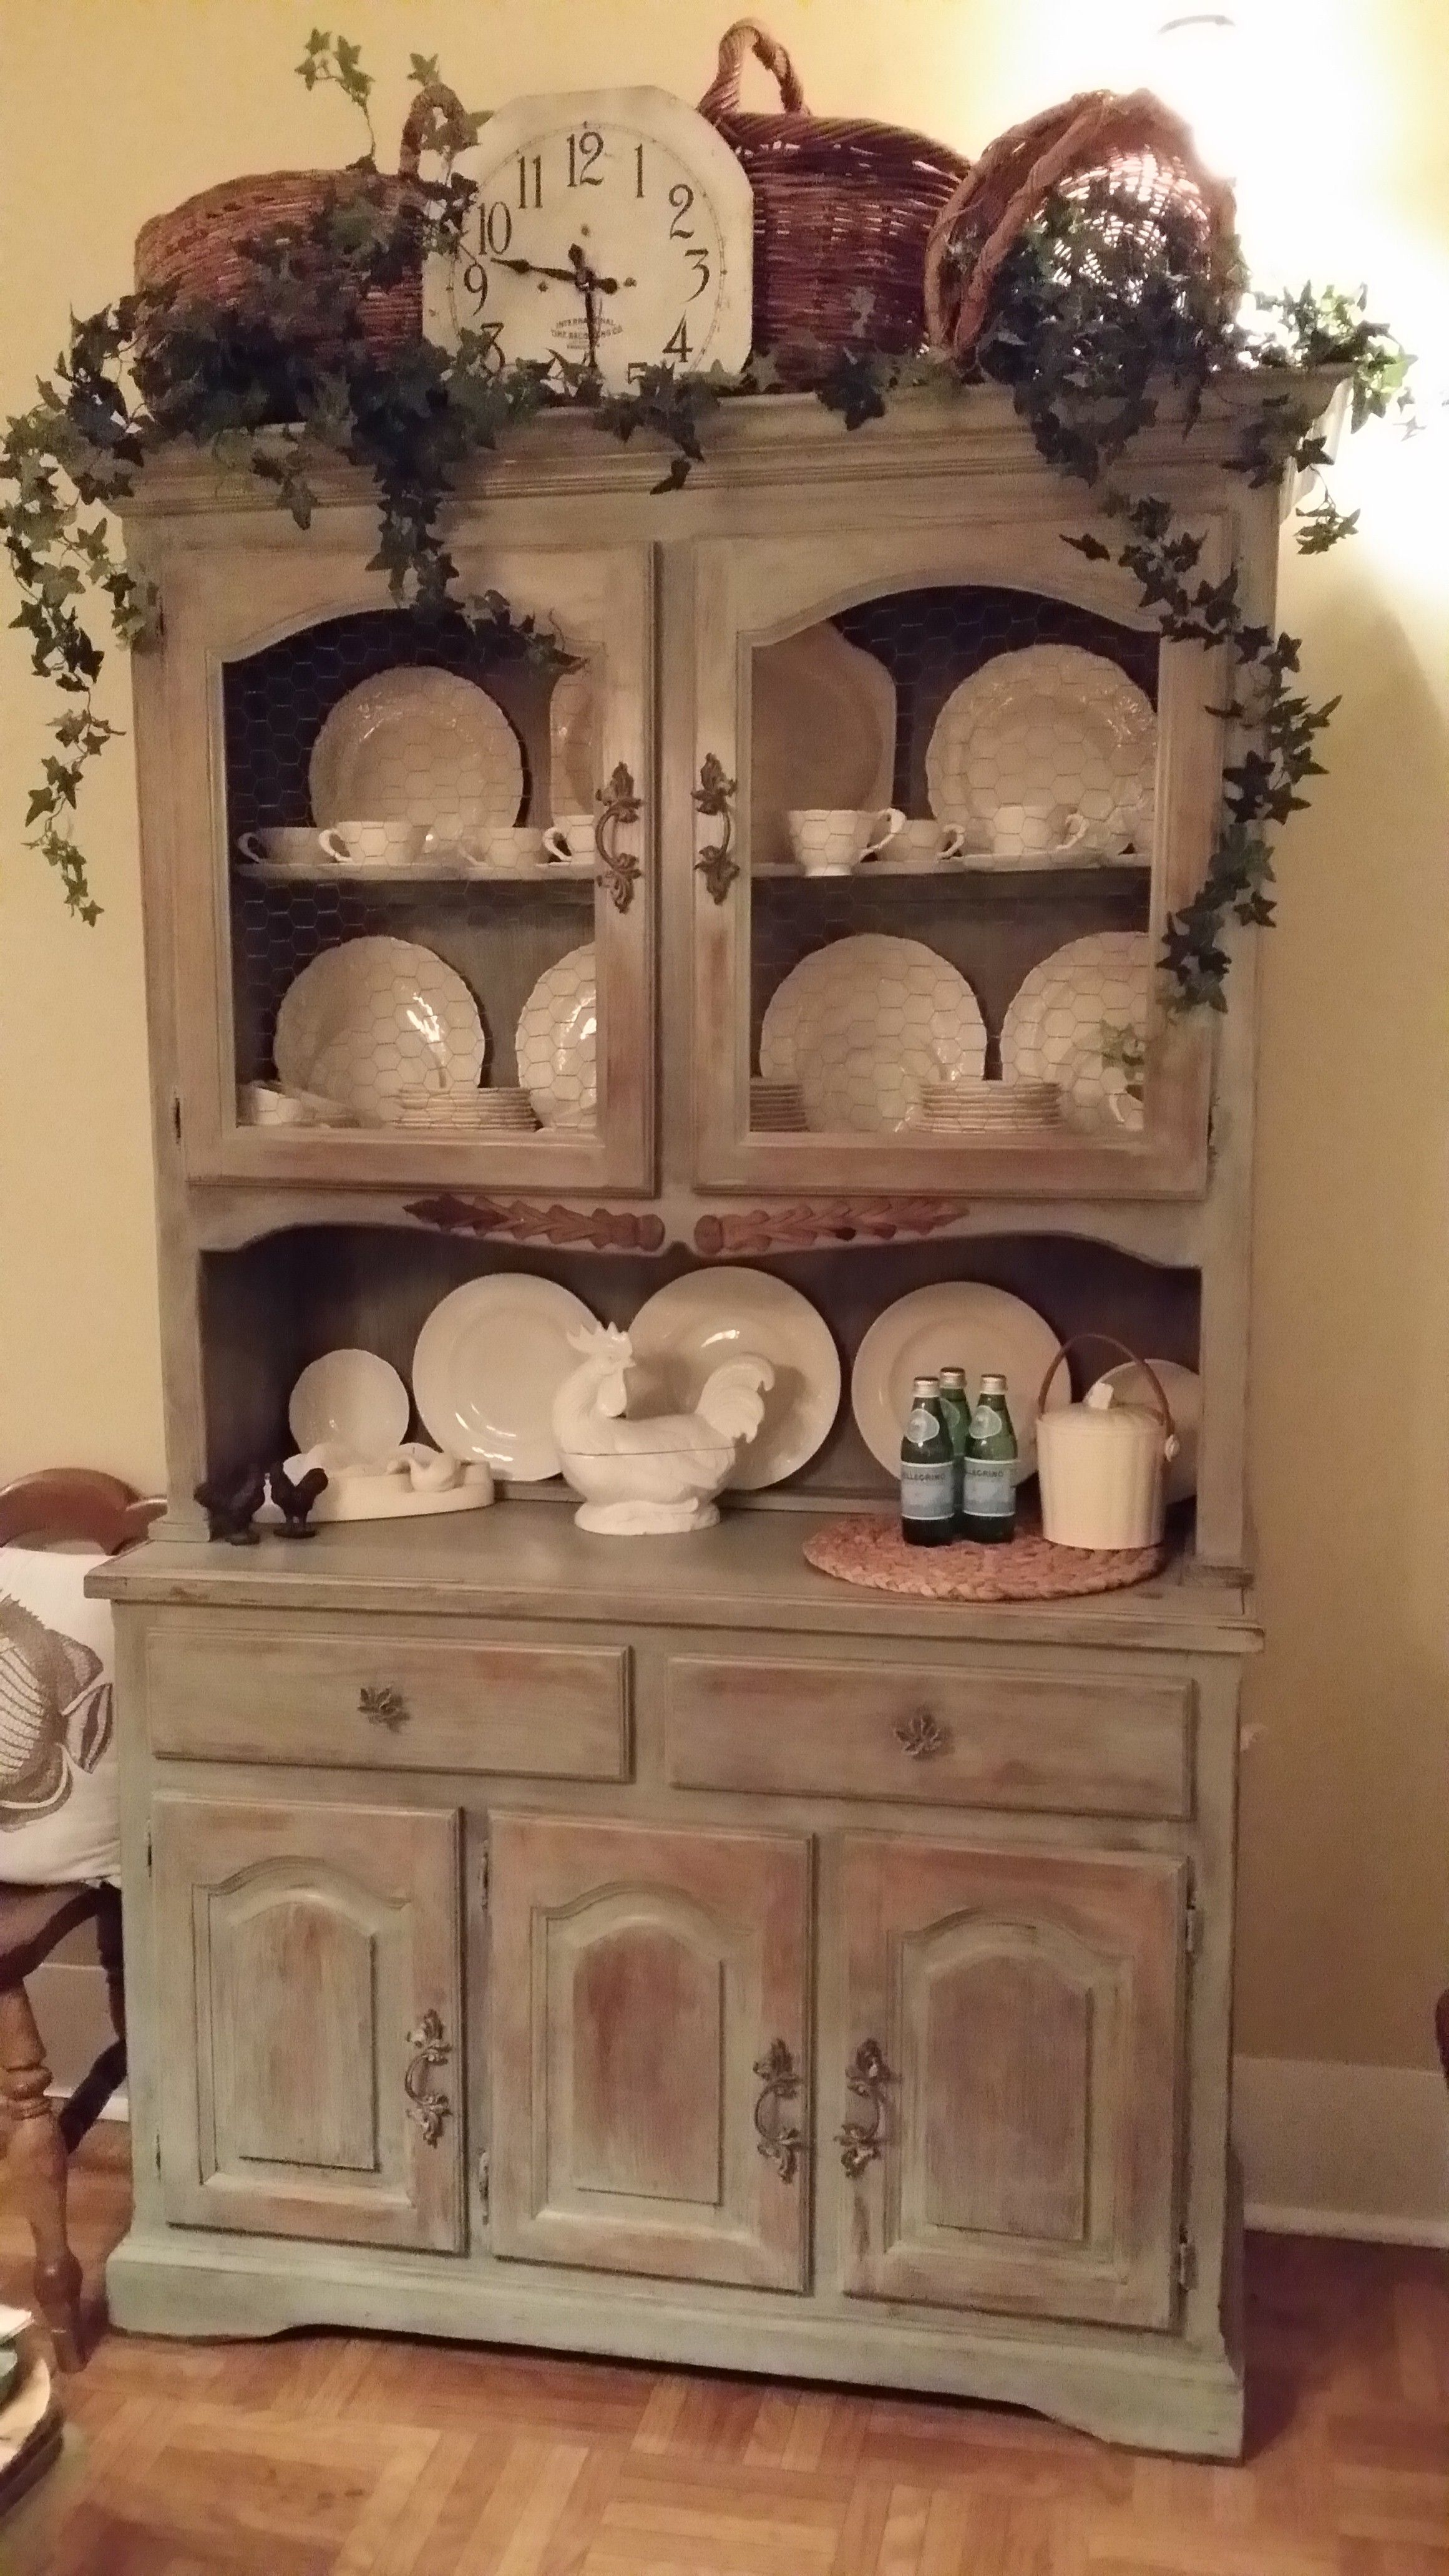 French country china cabinets - Before And After 1980 S China Cabinet To French Country Hutch Barrnone